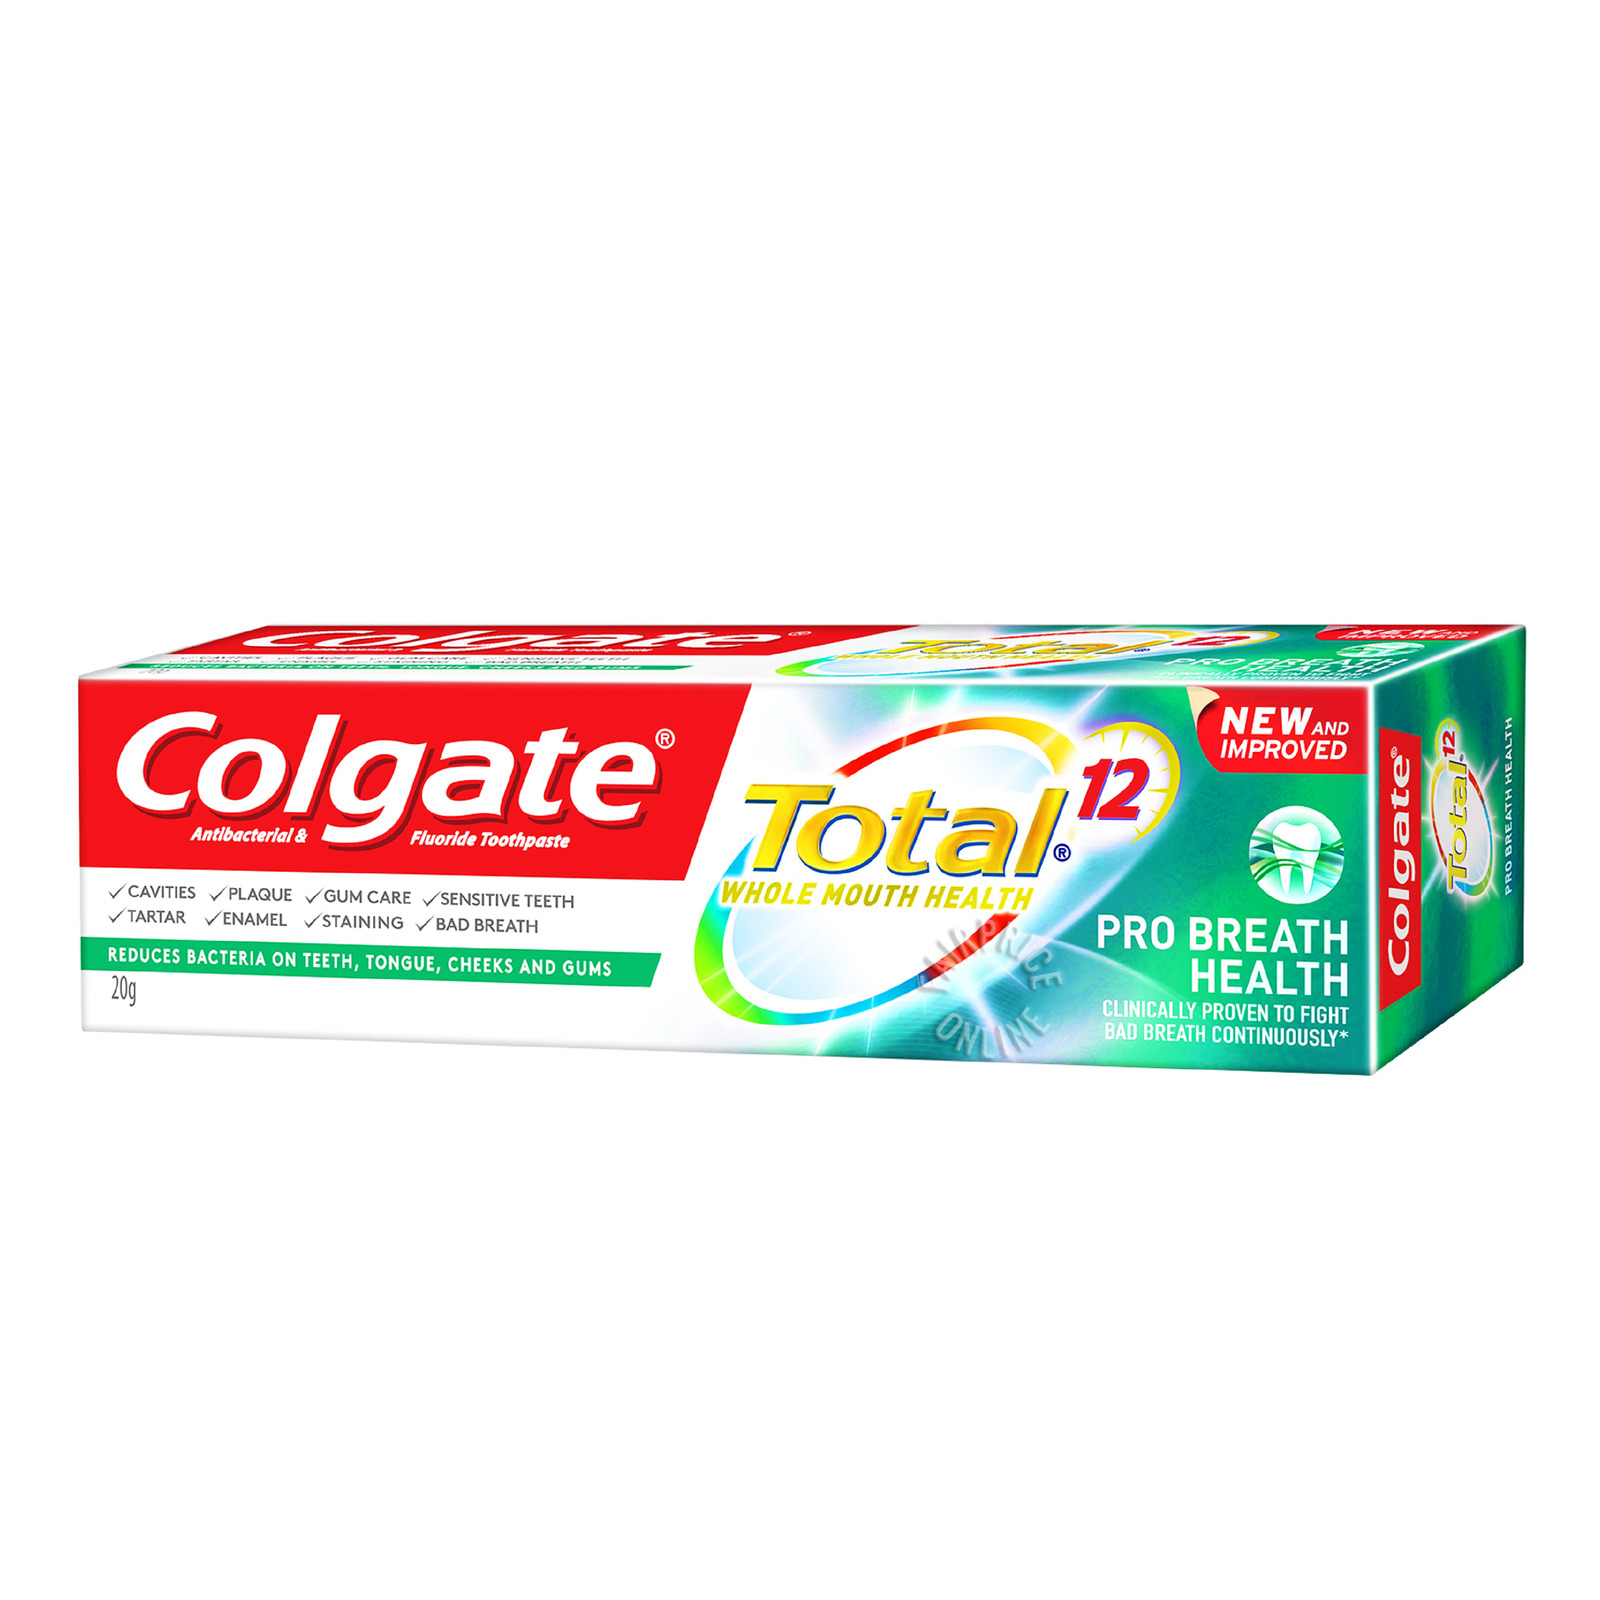 Colgate Total Toothpaste - Pro Breath Health